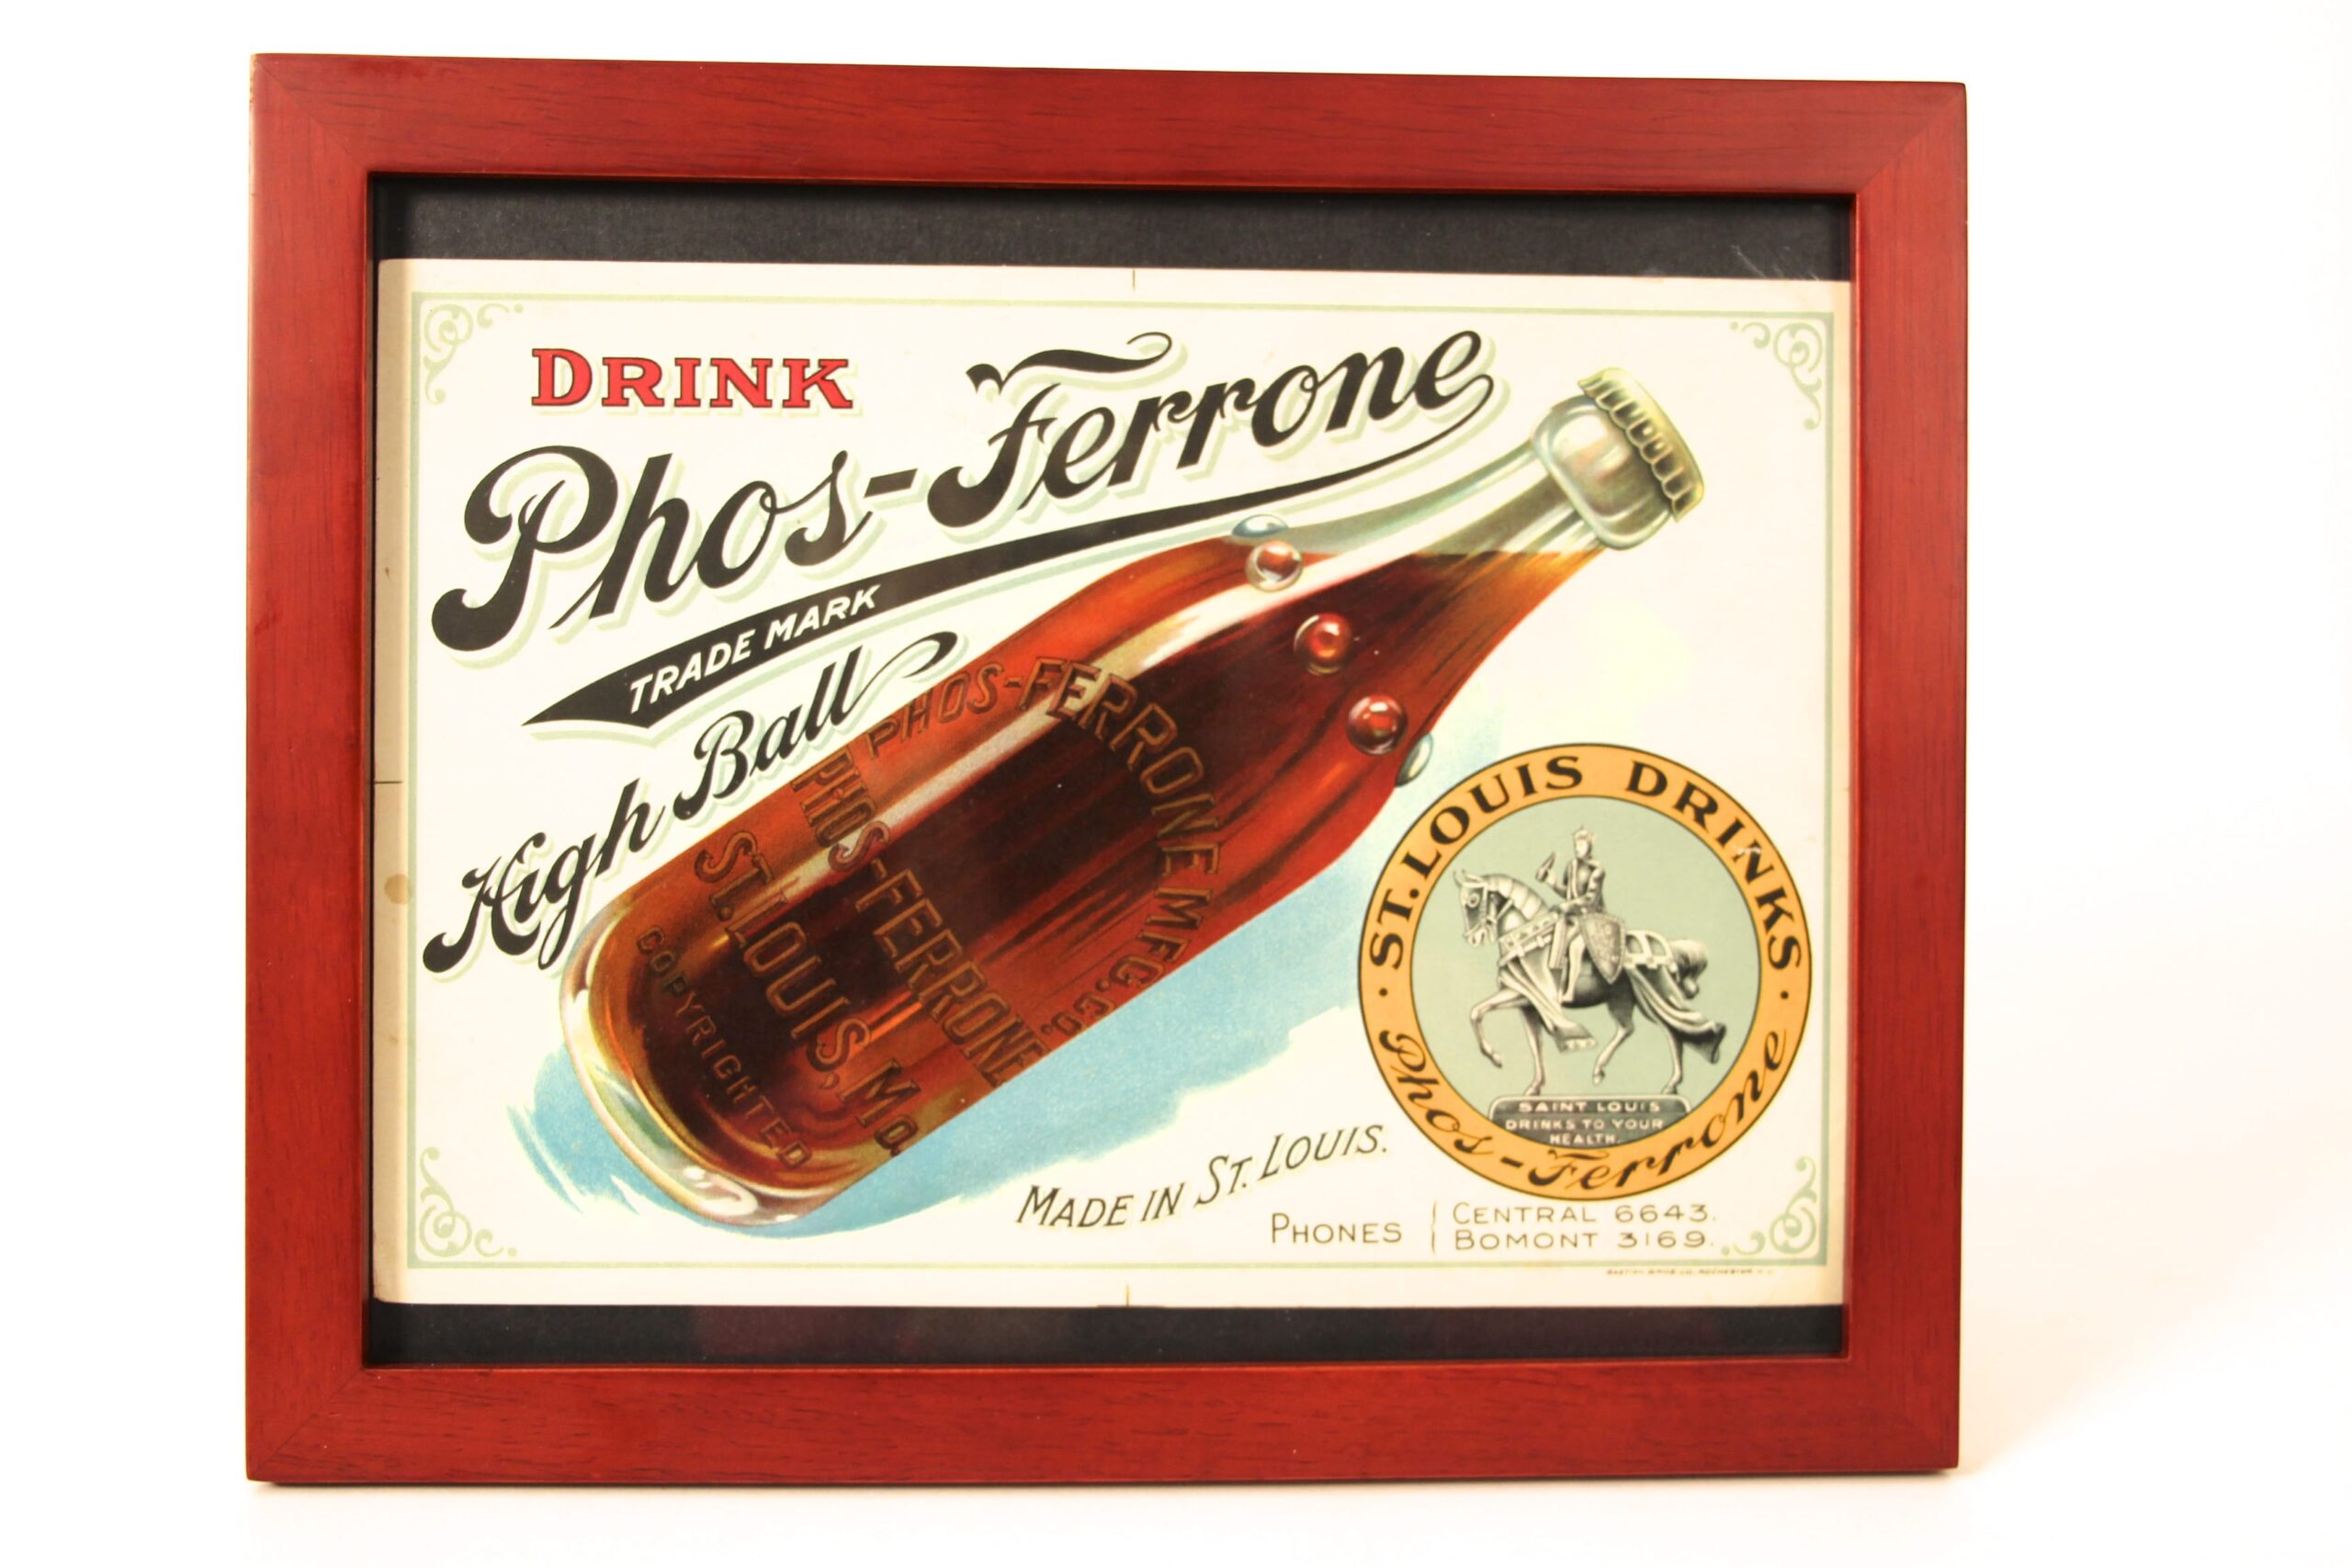 Phos-Ferrone Soda Water Cardboard Sign, St. Louis, MO